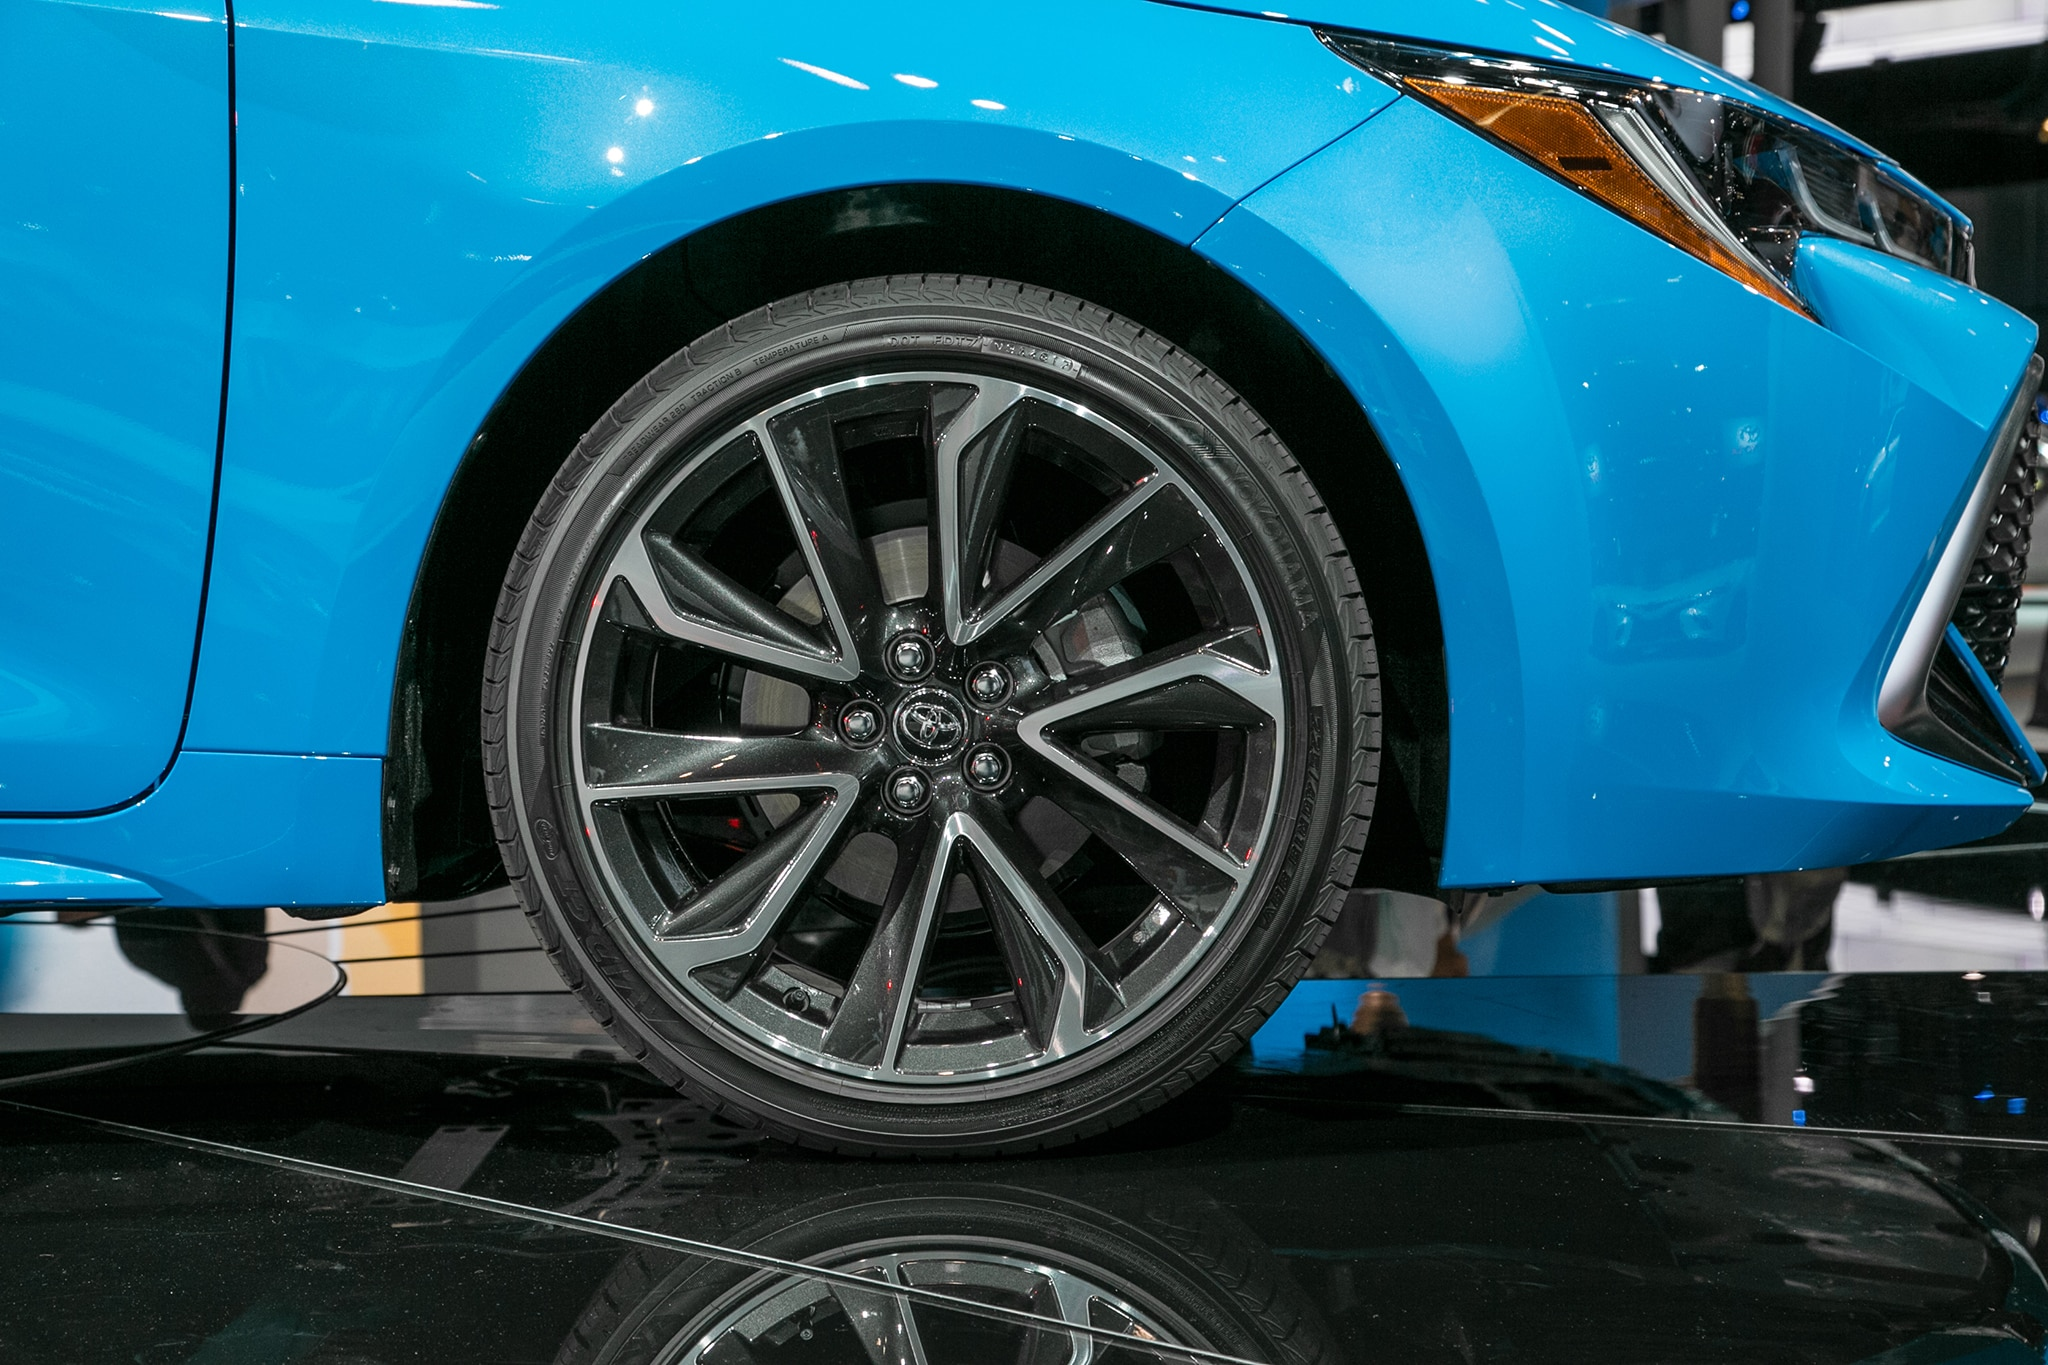 14 Inch Rims For Toyota Corolla >> 2019 Toyota Corolla Hatchback Hatches Outside of Javits Center | Automobile Magazine